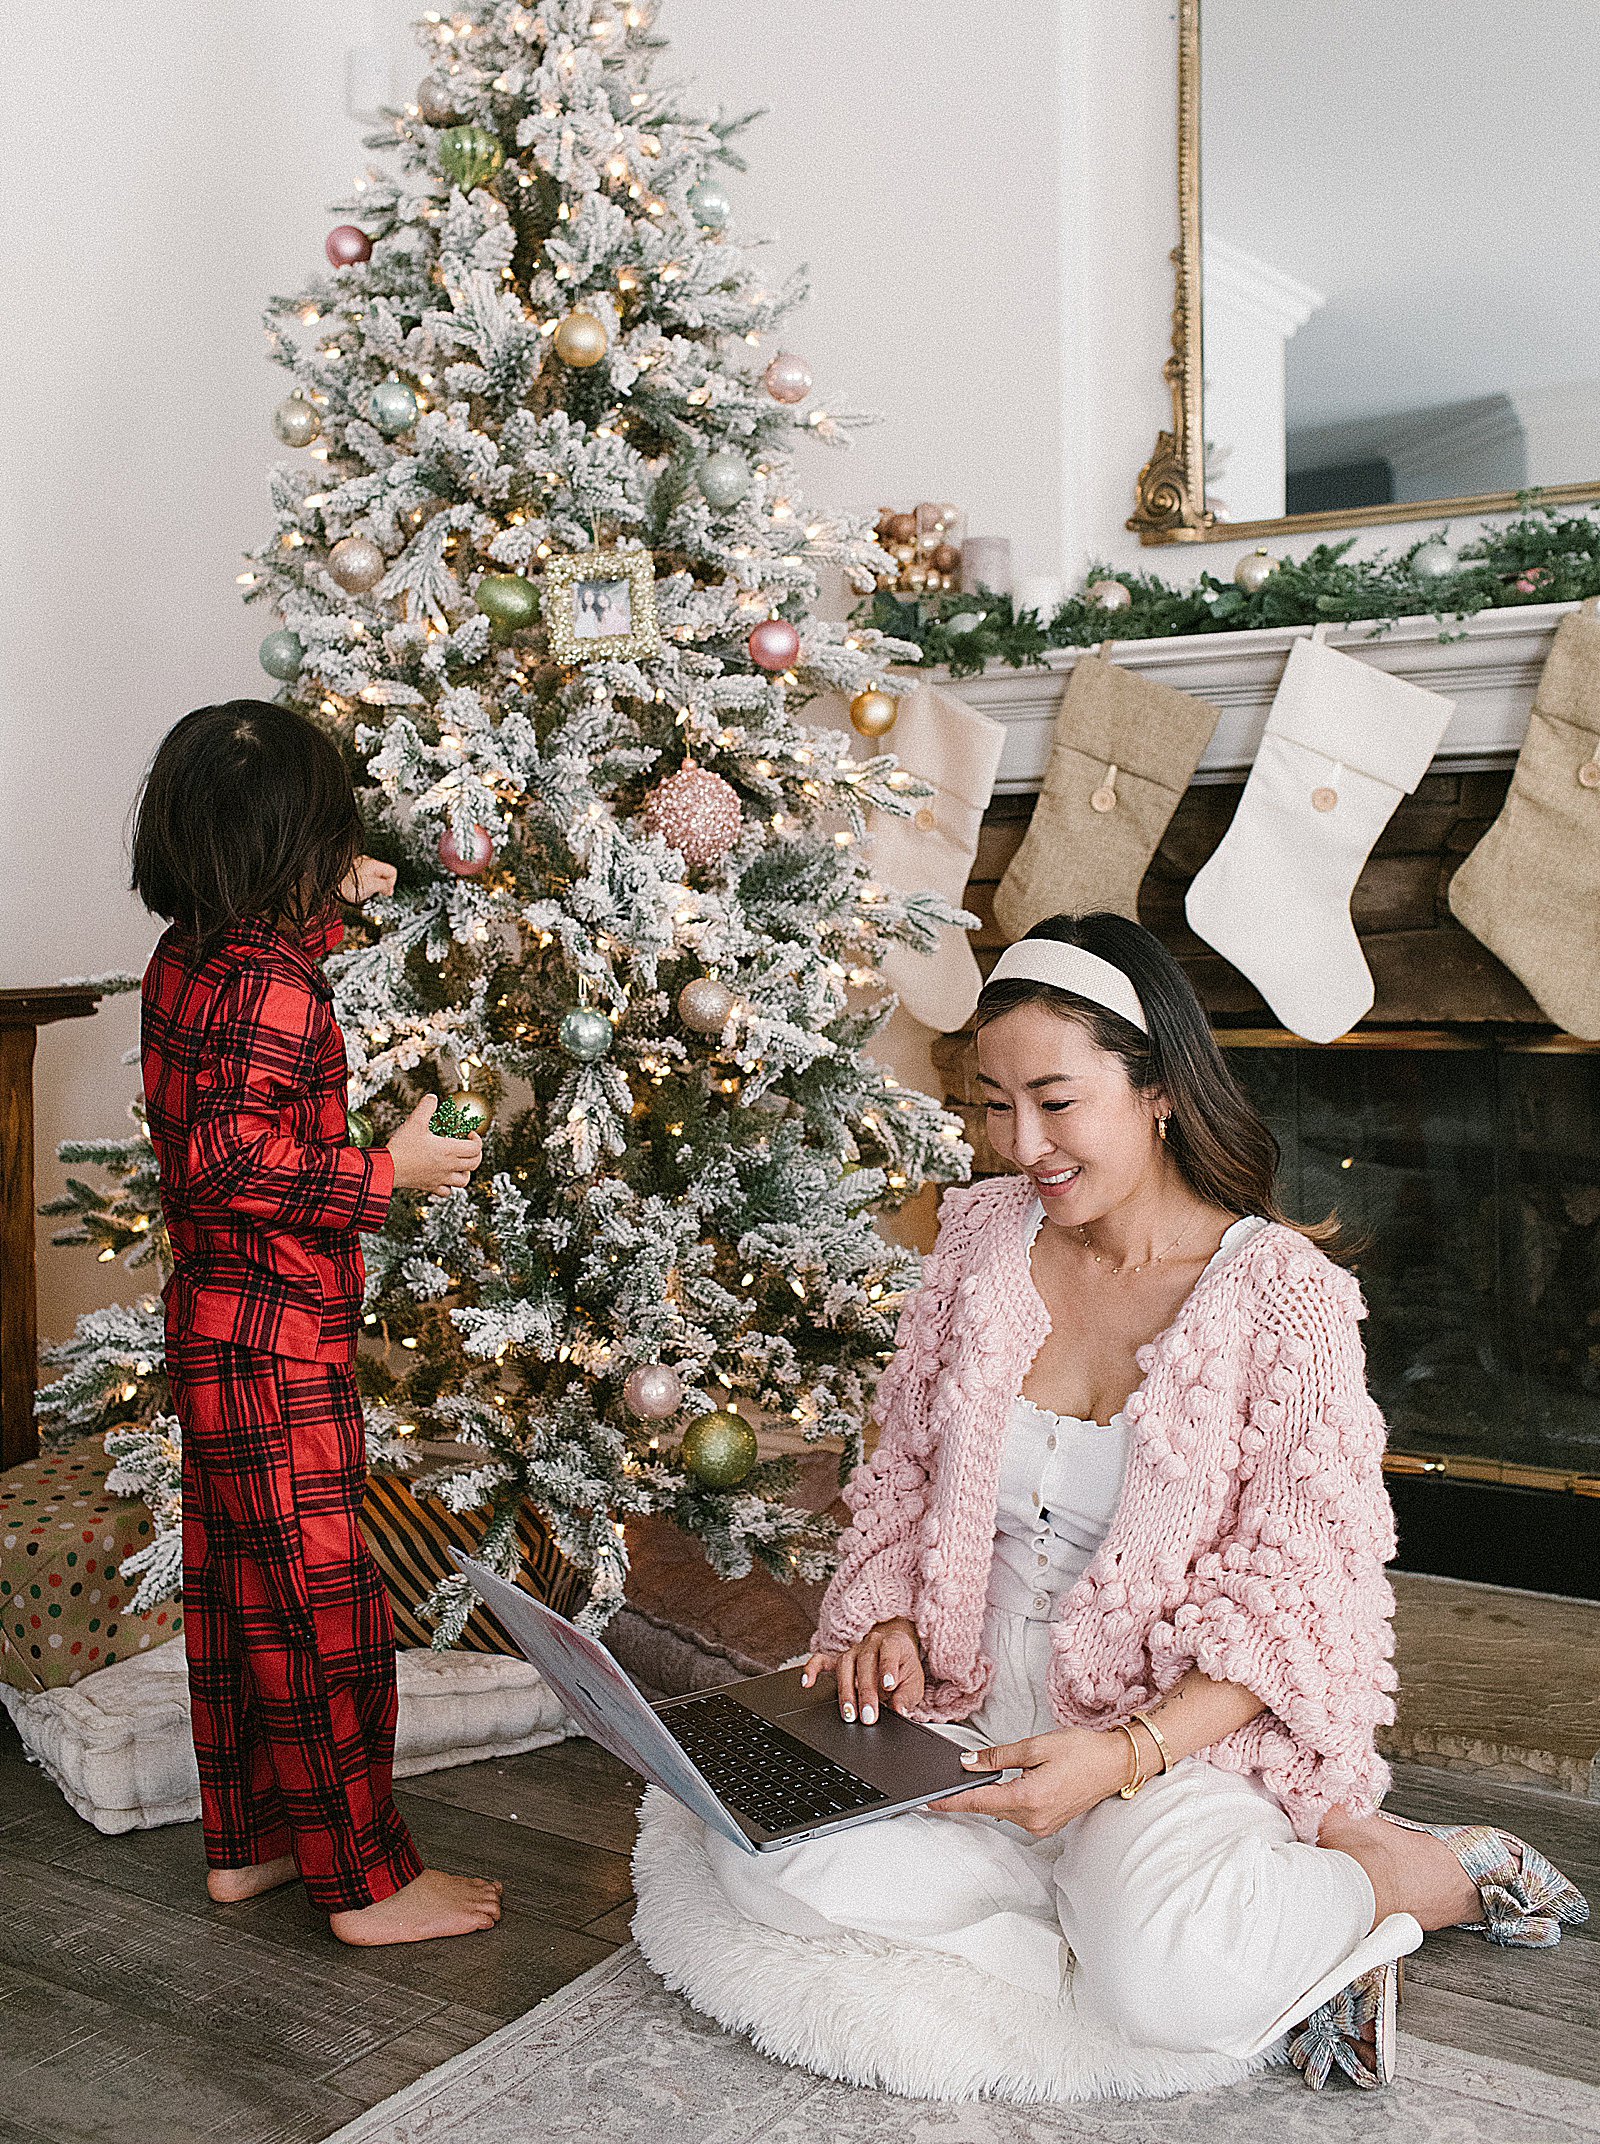 Giving Back This Holiday with AmazonSmile